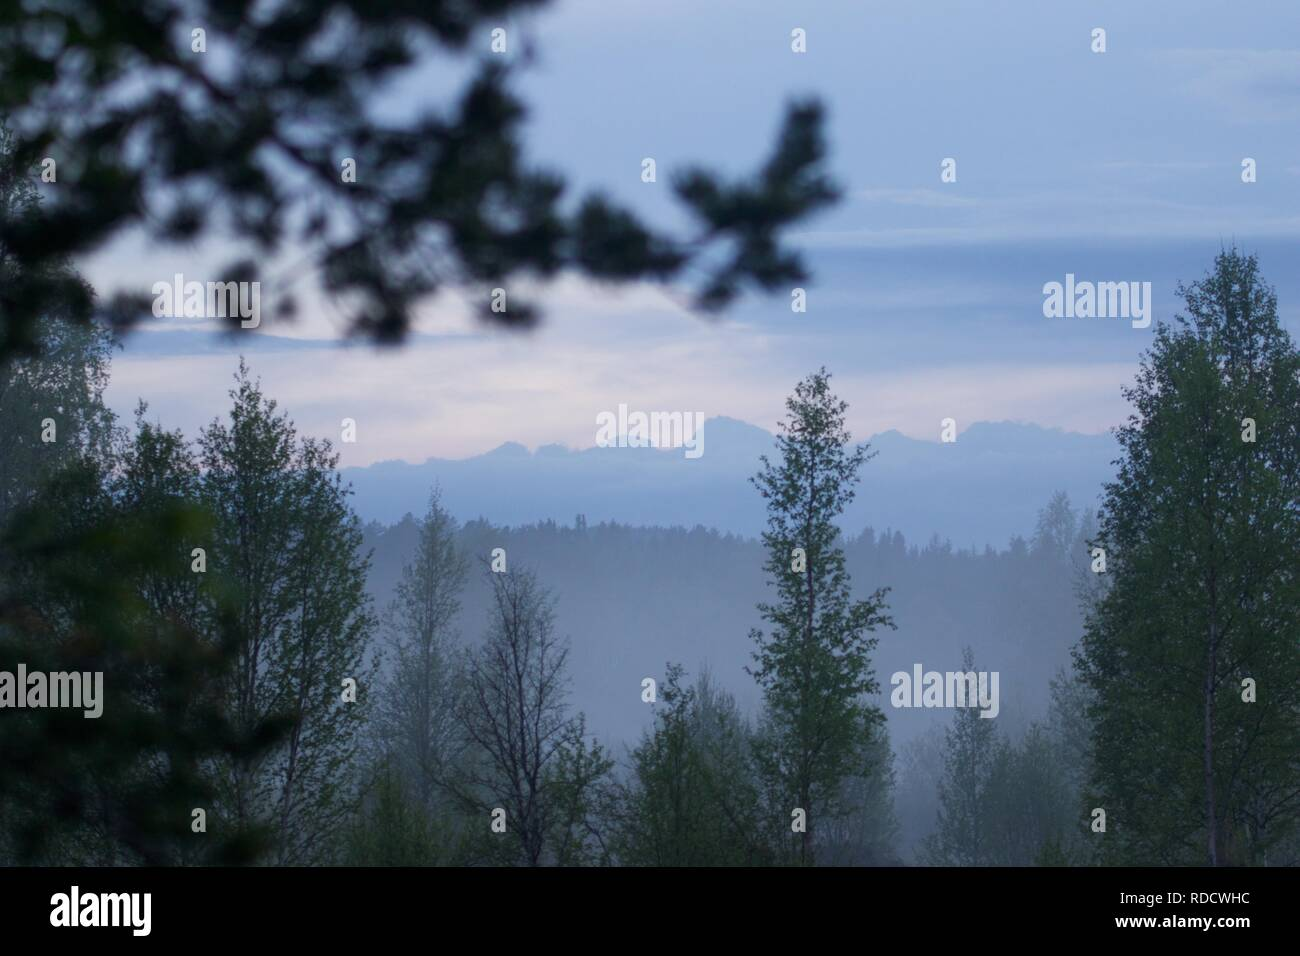 A cloudy forest view in a norwegian woodland. - Stock Image